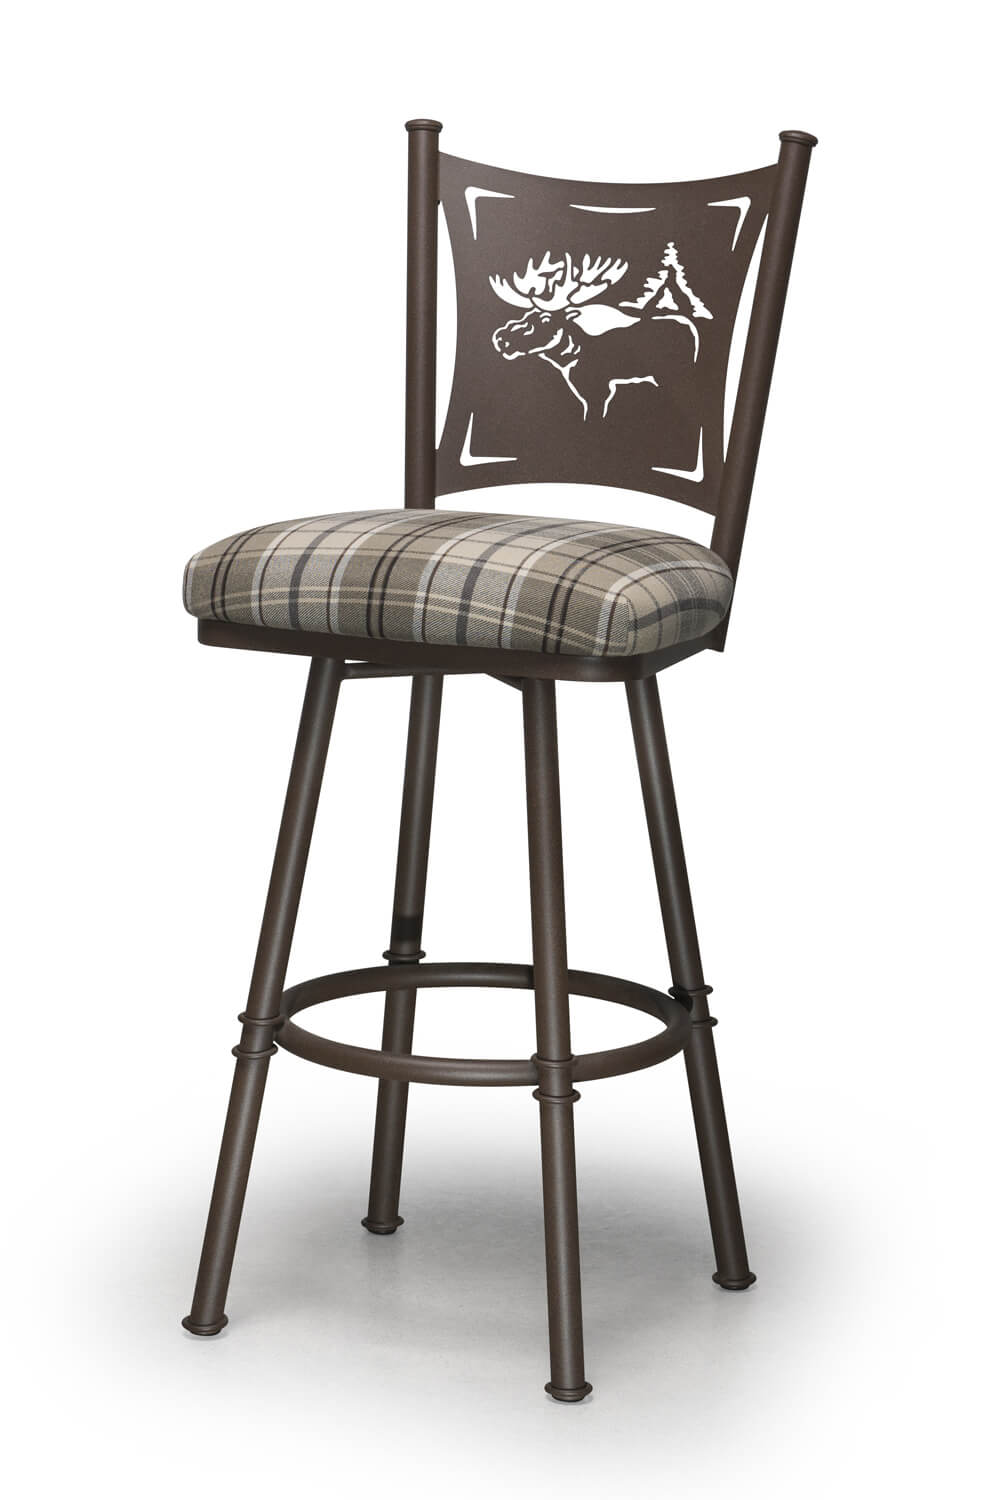 Miraculous Creation Collection 1 Swivel Stool Machost Co Dining Chair Design Ideas Machostcouk